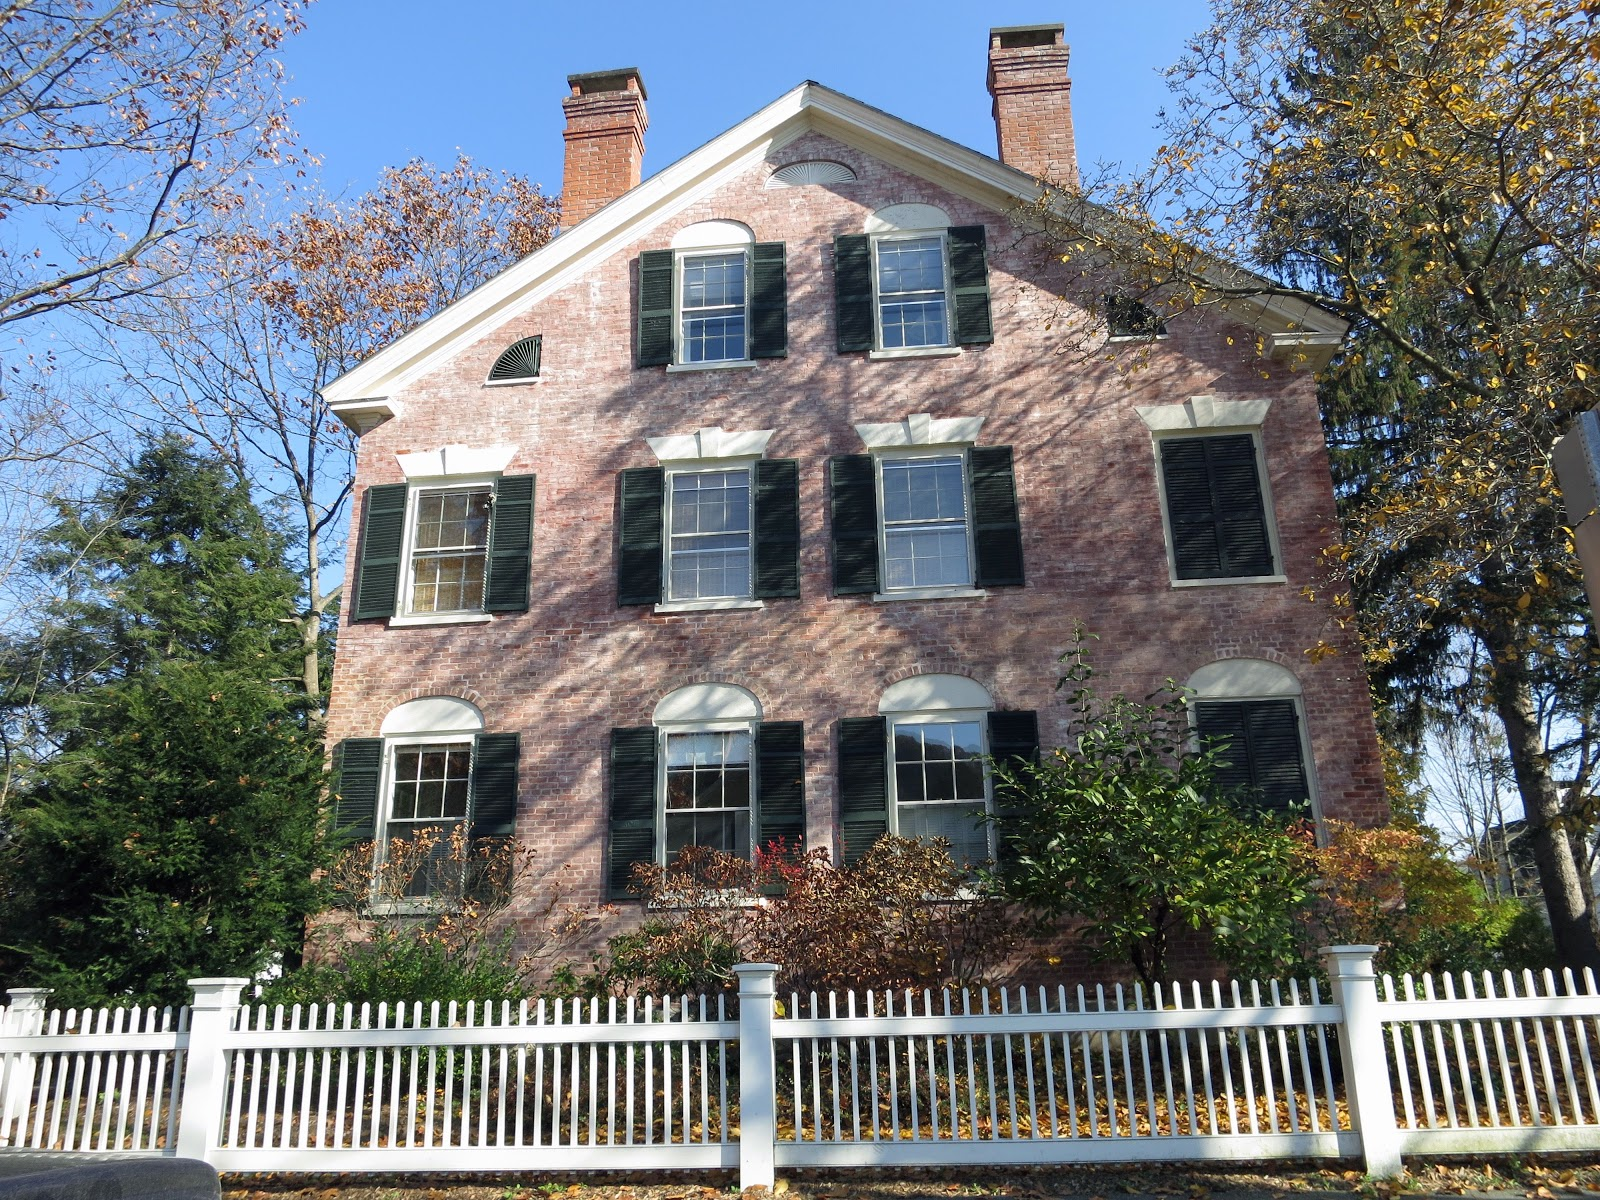 A Proper Bostonian: Houses in Woodstock, Vermont